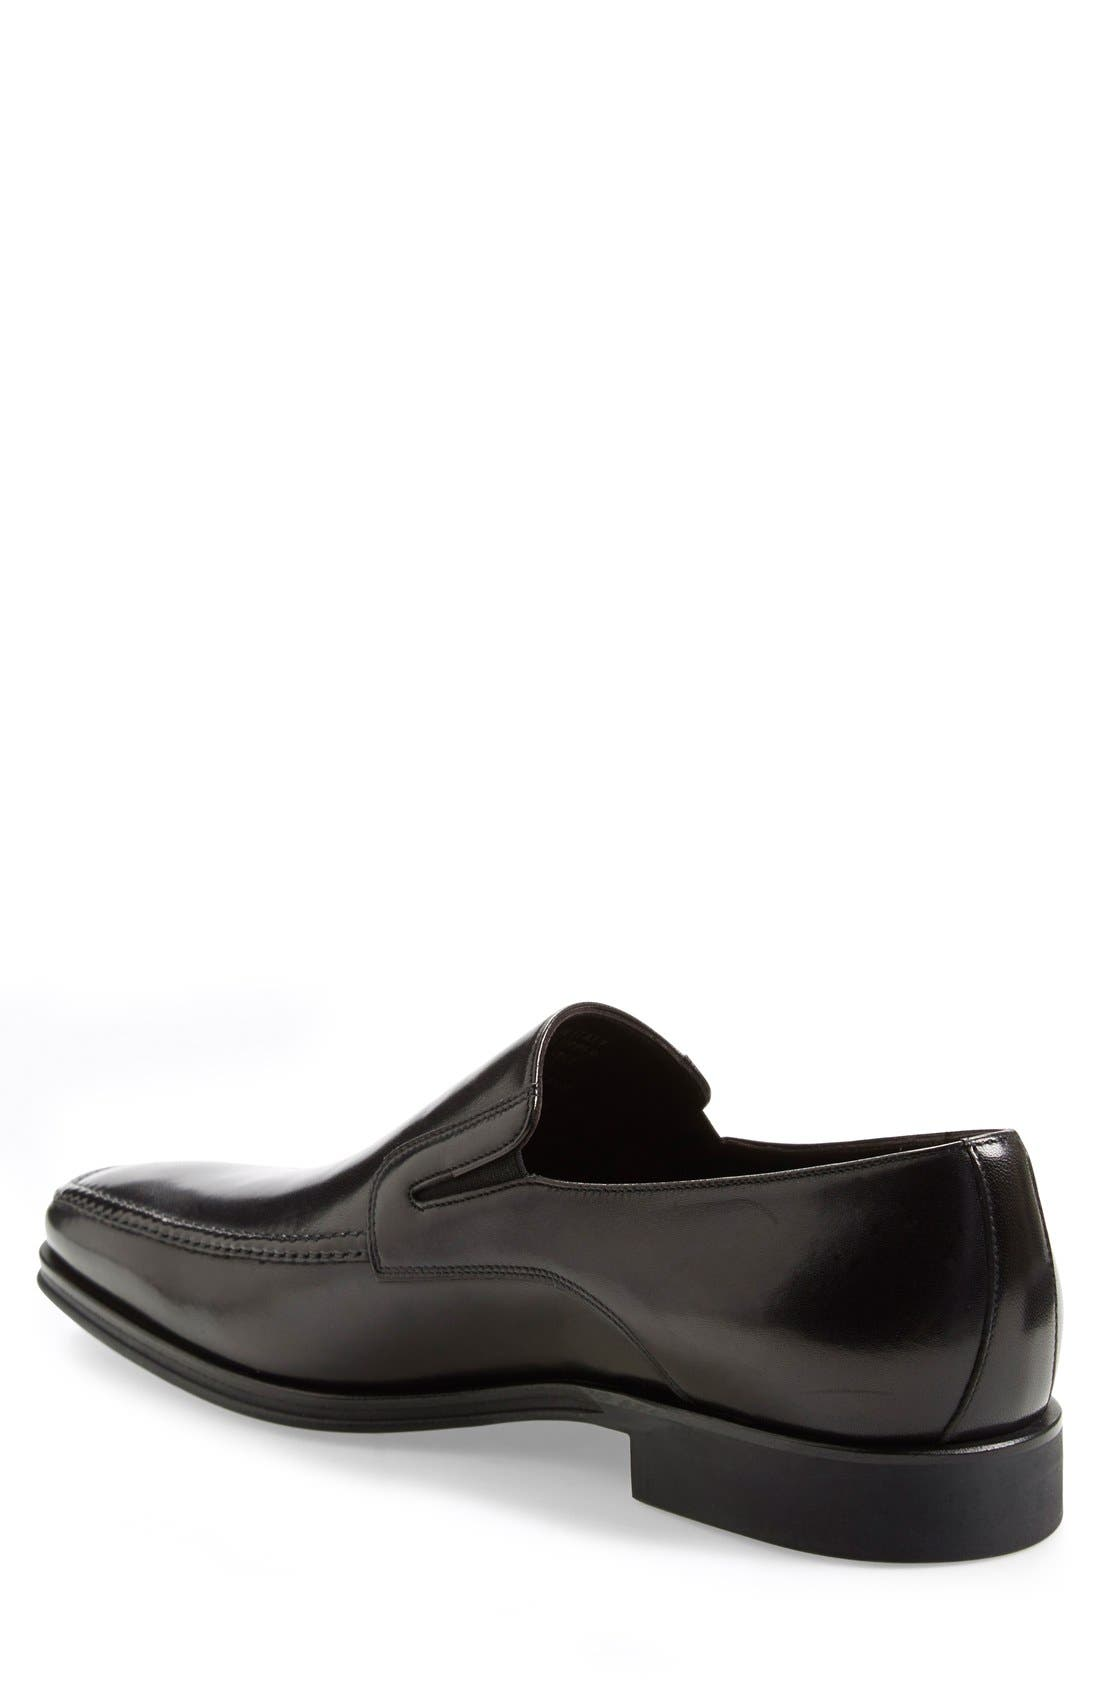 MONTE ROSSO, Lucca Nappa Leather Loafer, Alternate thumbnail 8, color, BLACK